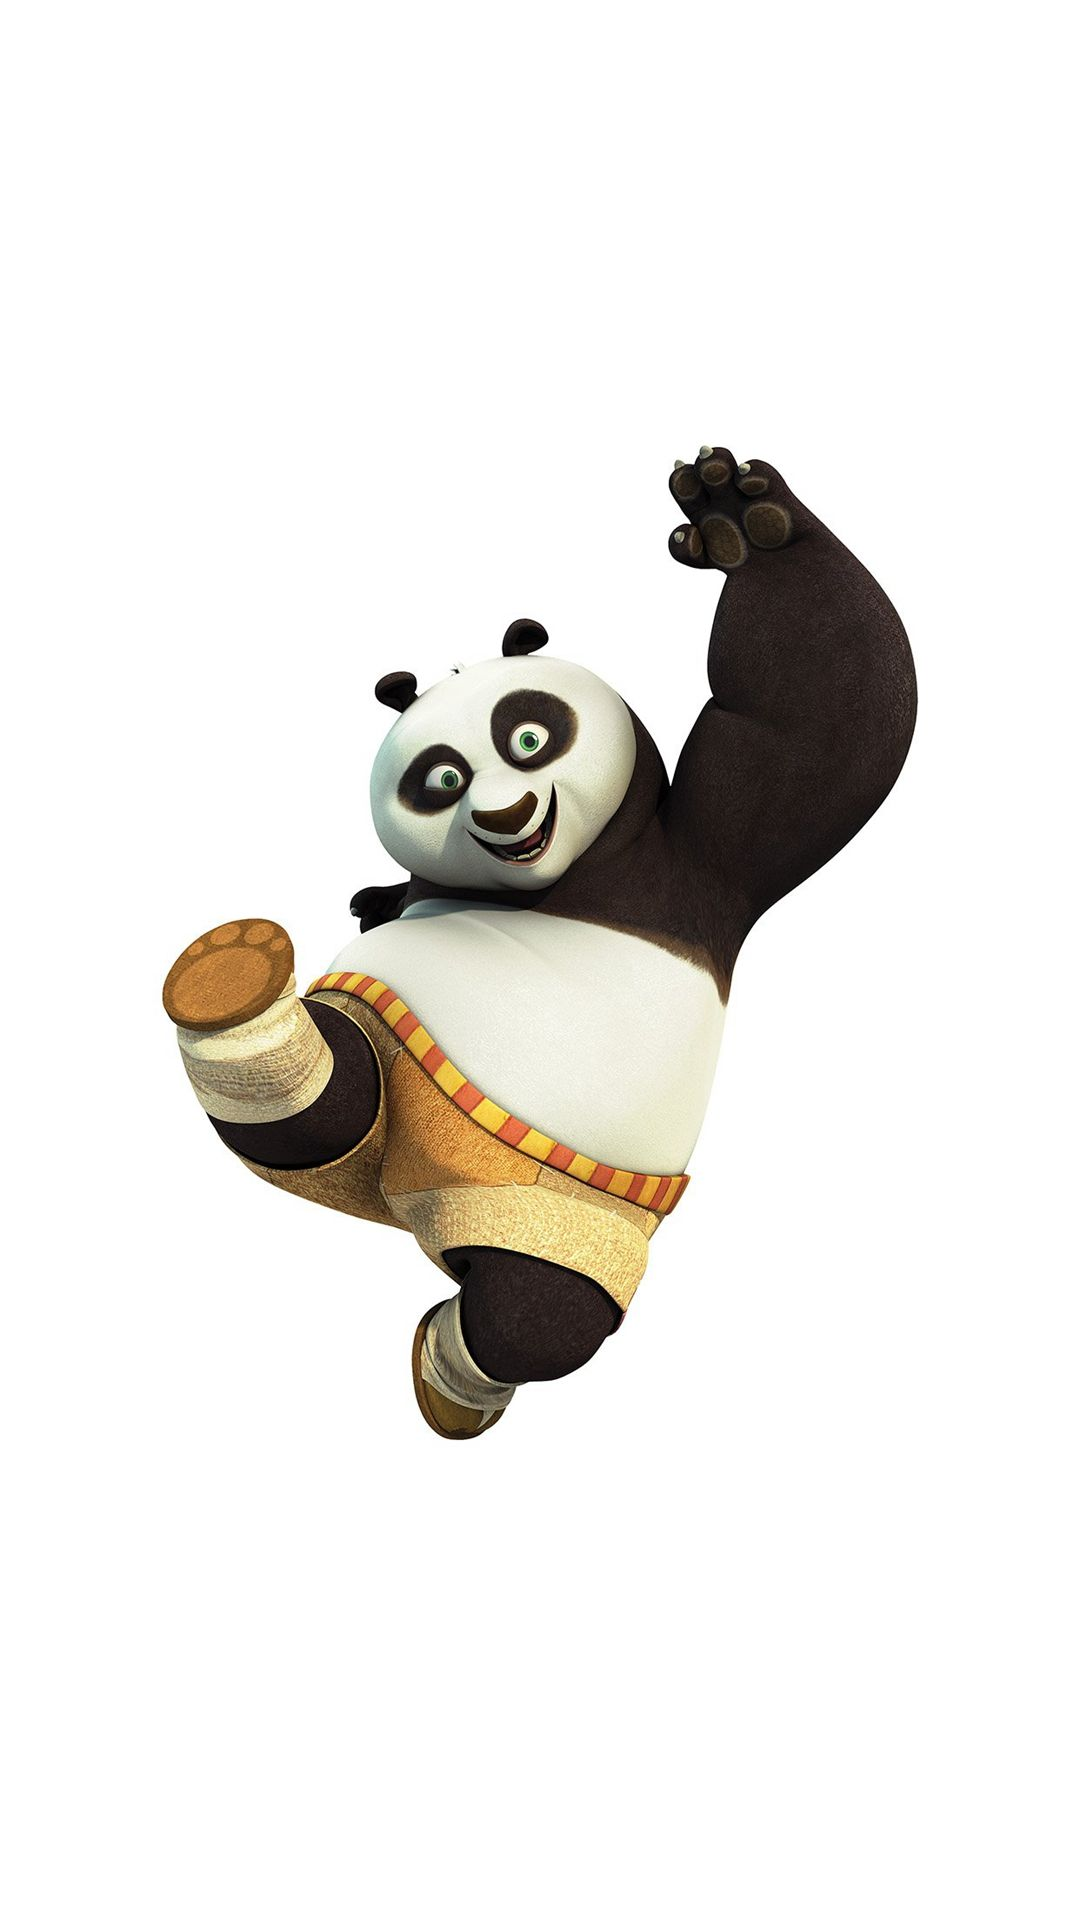 Kung fu panda iphone wallpaper - Kungfu Panda Animal Dreamworks Kick Cute Anime Iphone 6 Plus Wallpaper